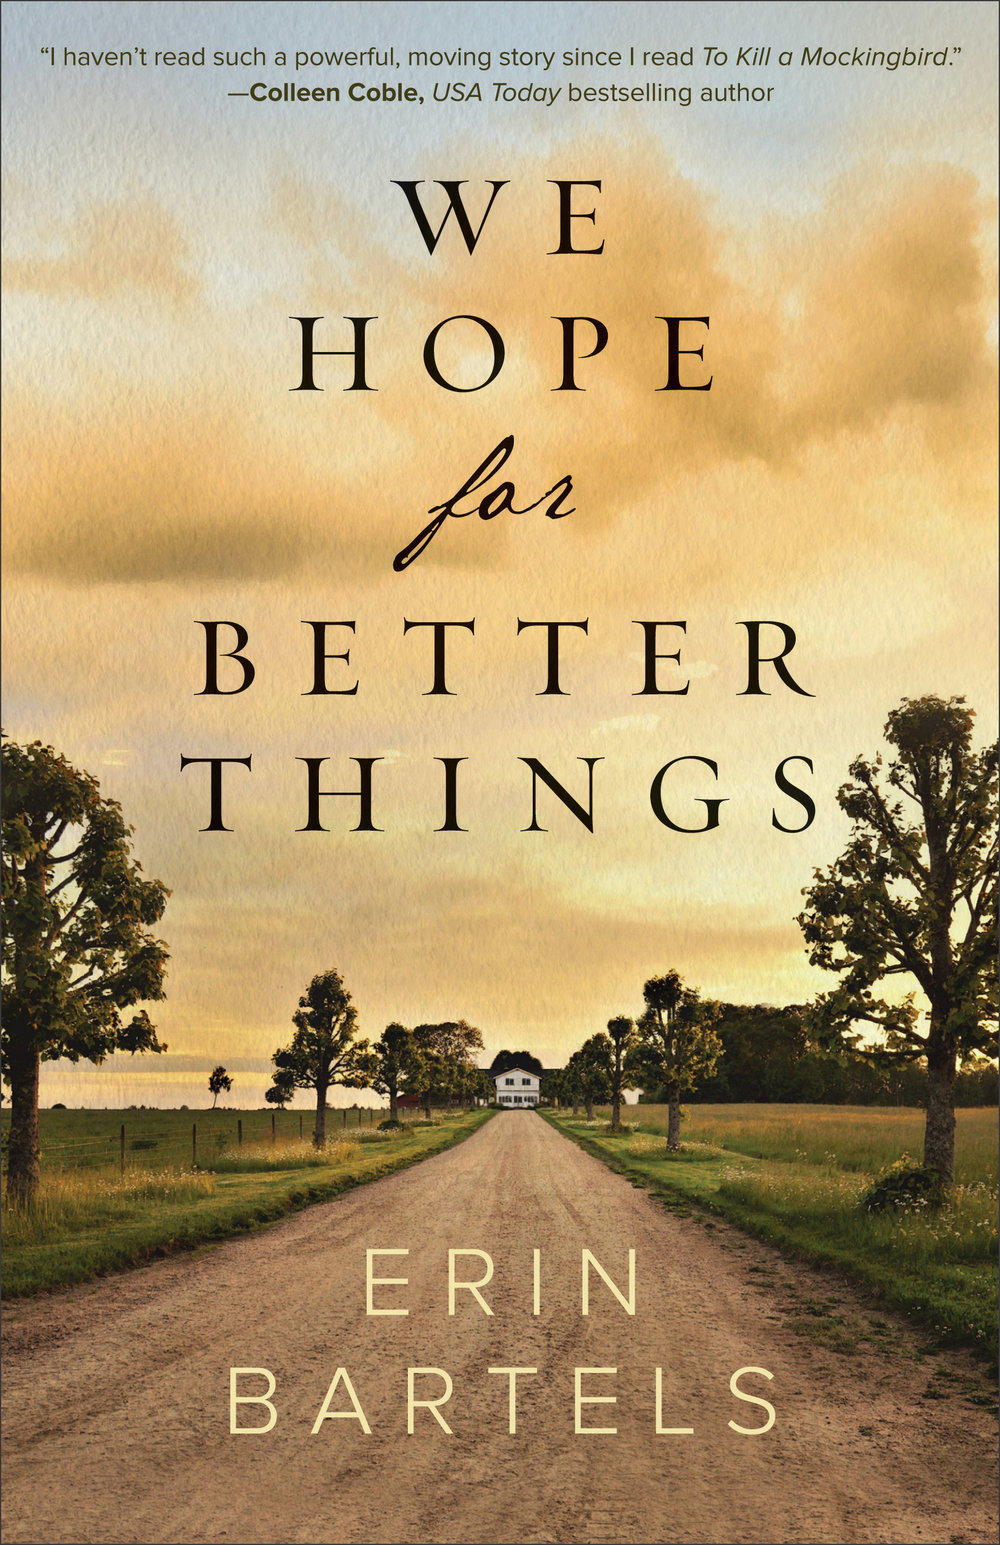 We Hope for Better Things-Book Cover.jpg